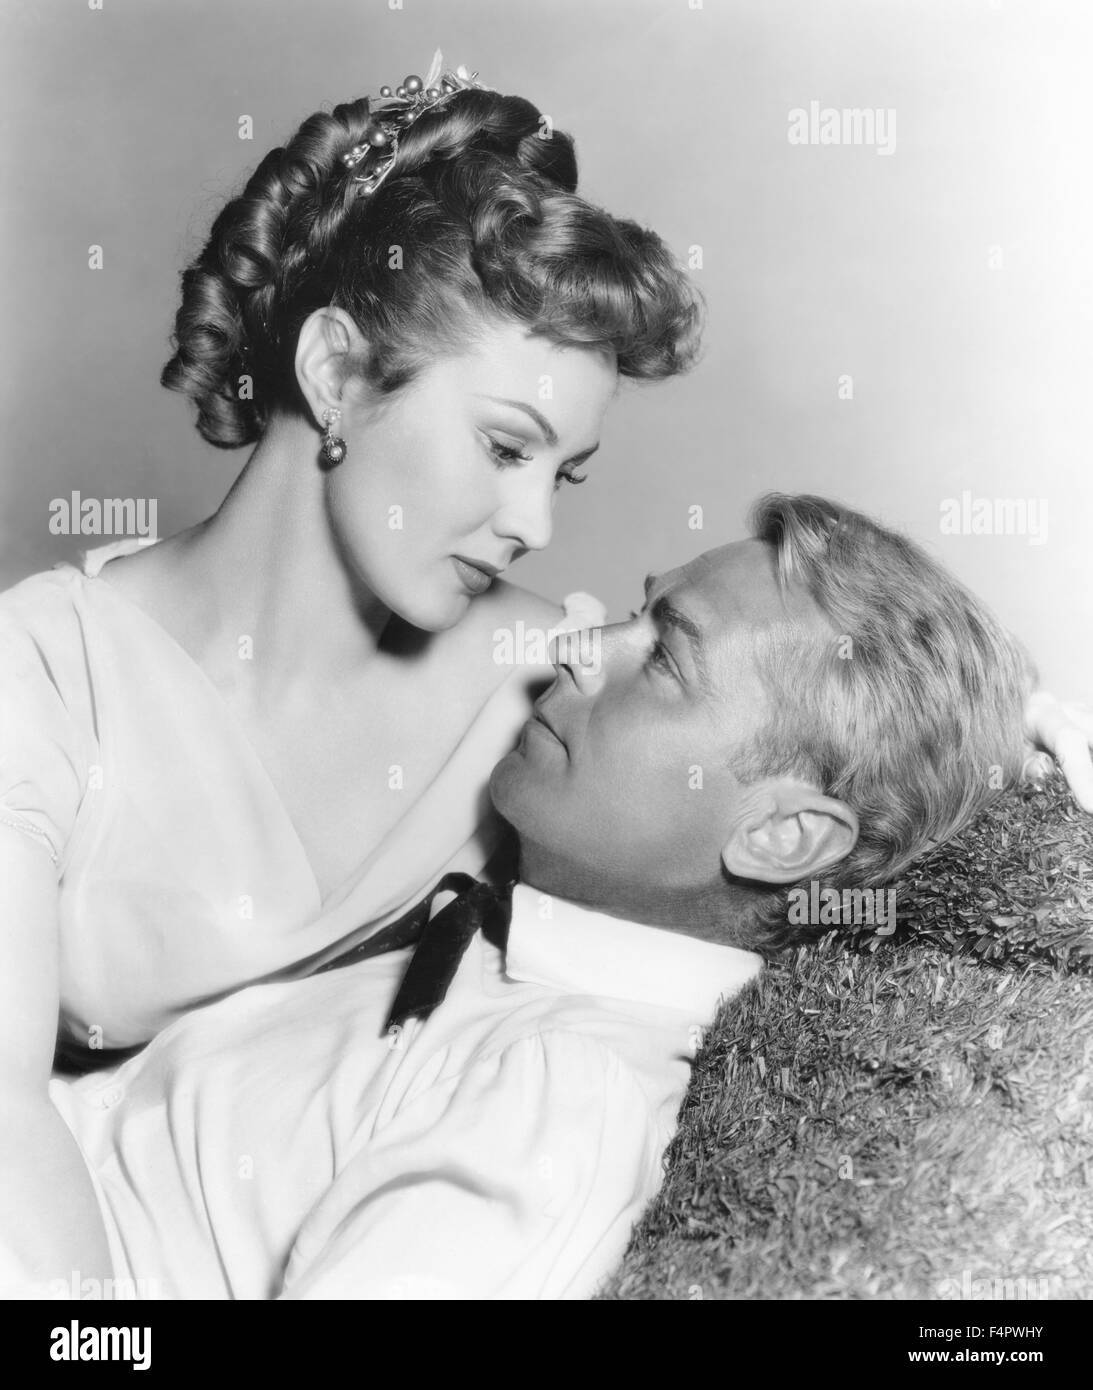 Virginia Mayo and Alan Ladd / The Iron Mistress / 1952 directed by Gordon Douglas [Warner Bros. Pictures] - Stock Image